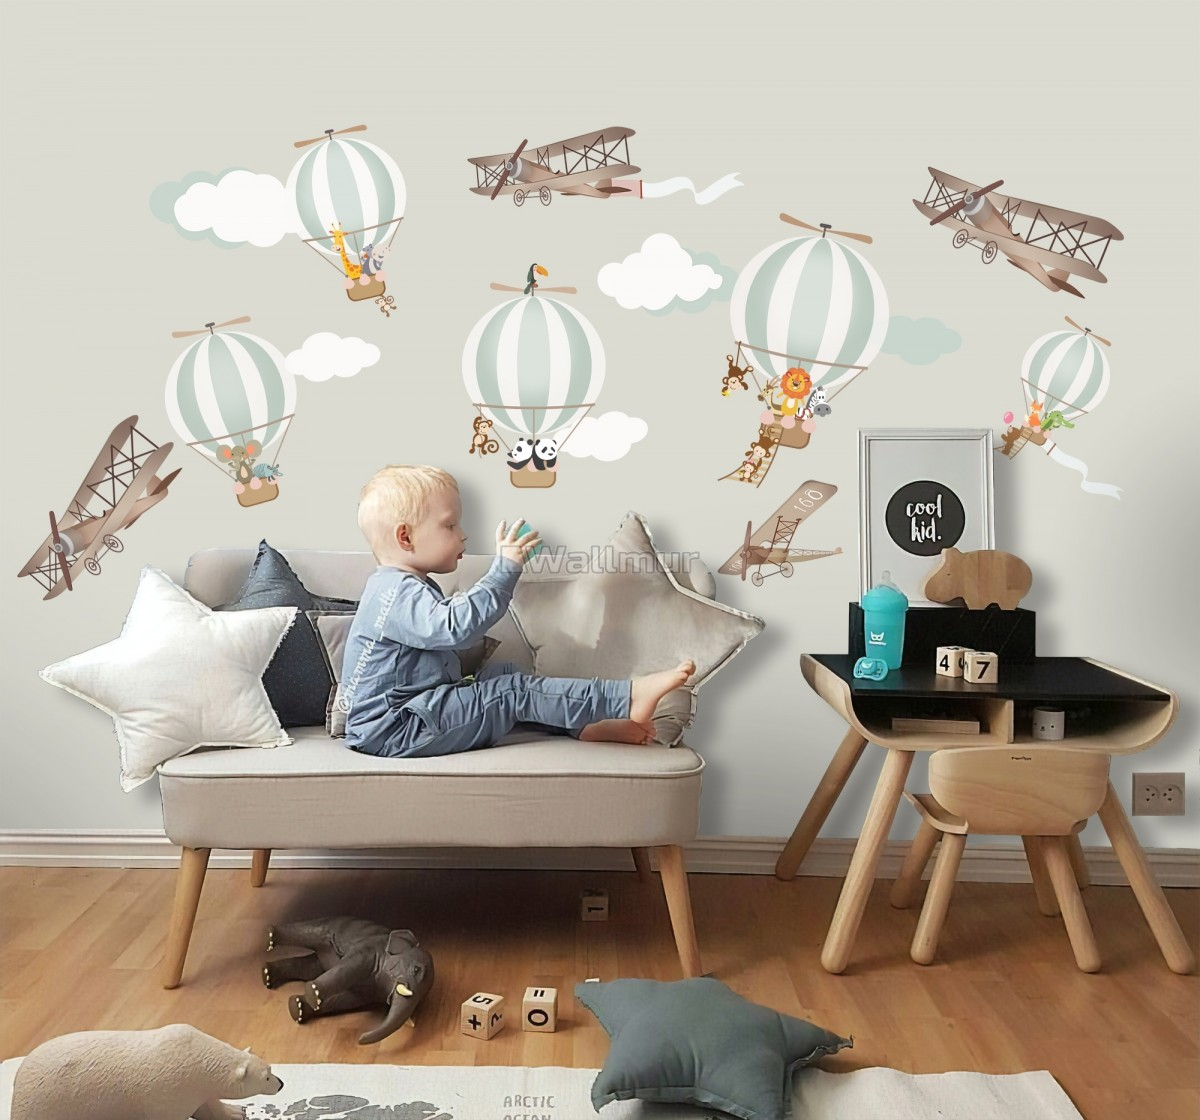 Kids Green Hot Air Balloon and Brown Aircraft with Clouds Wall Decal Sticker